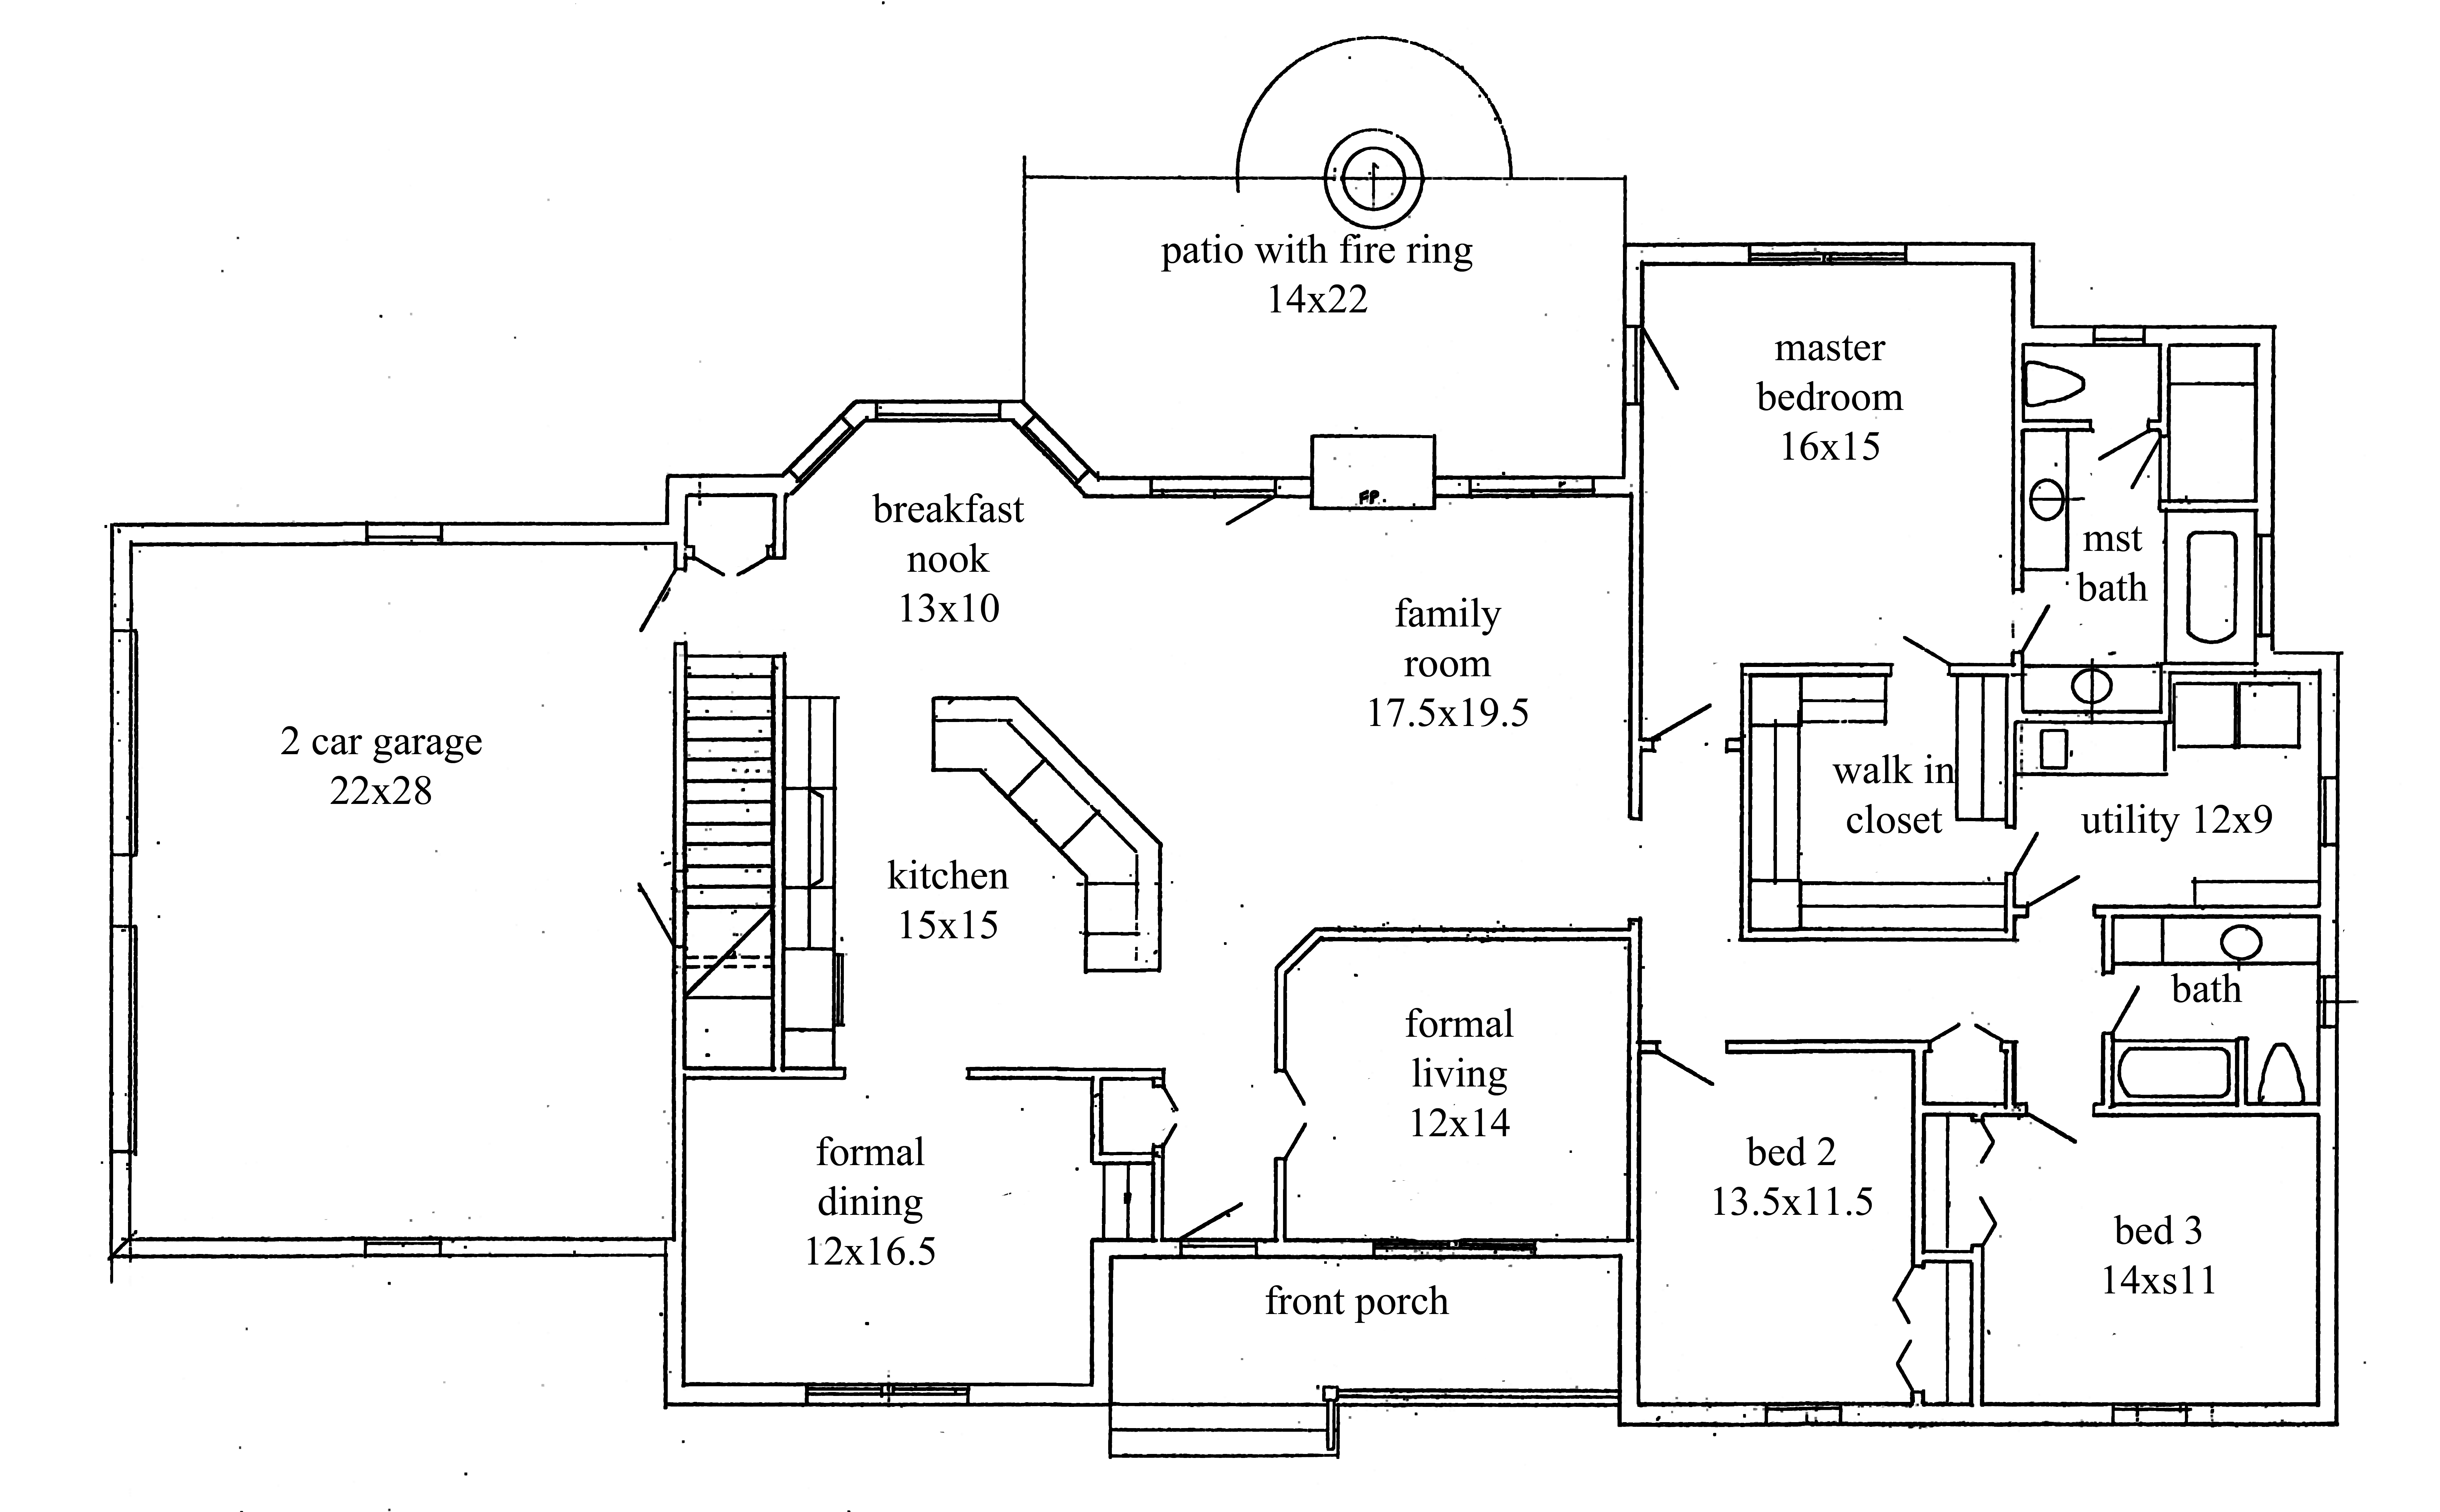 House plans new construction home floor plan for 2 bedroom ranch house floor plans